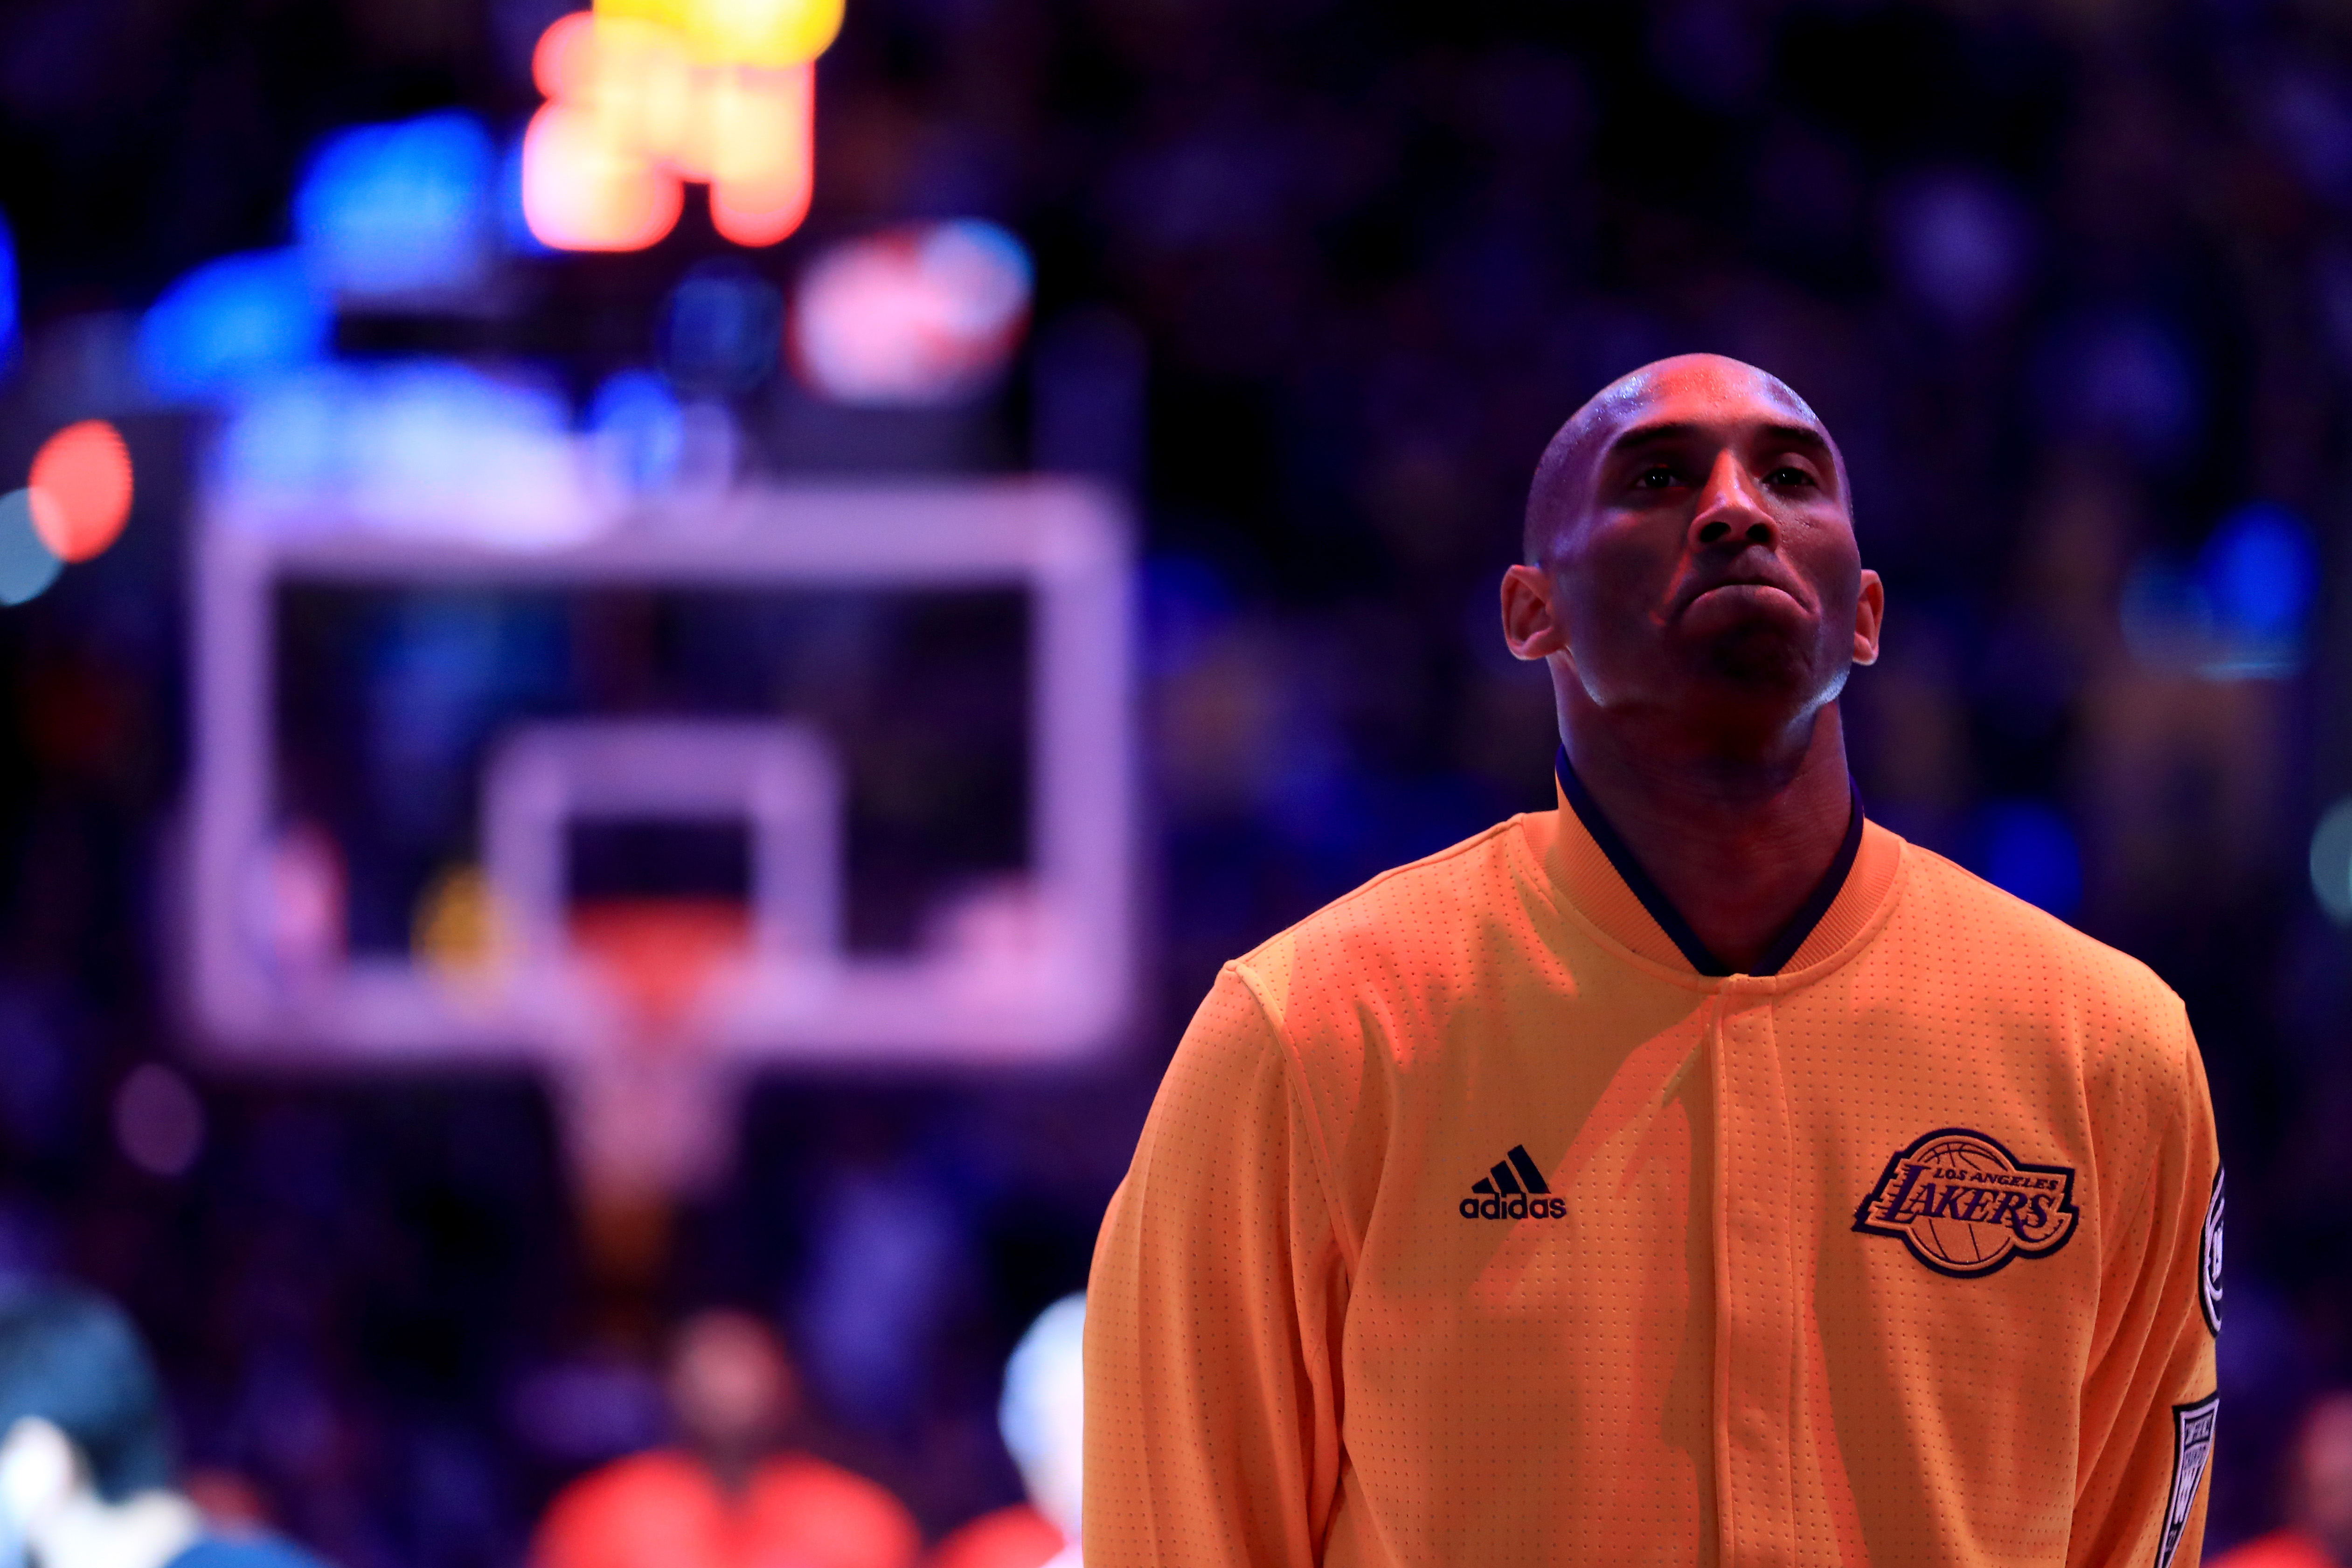 Kobe Bryant says he would kneel for anthem if he still played